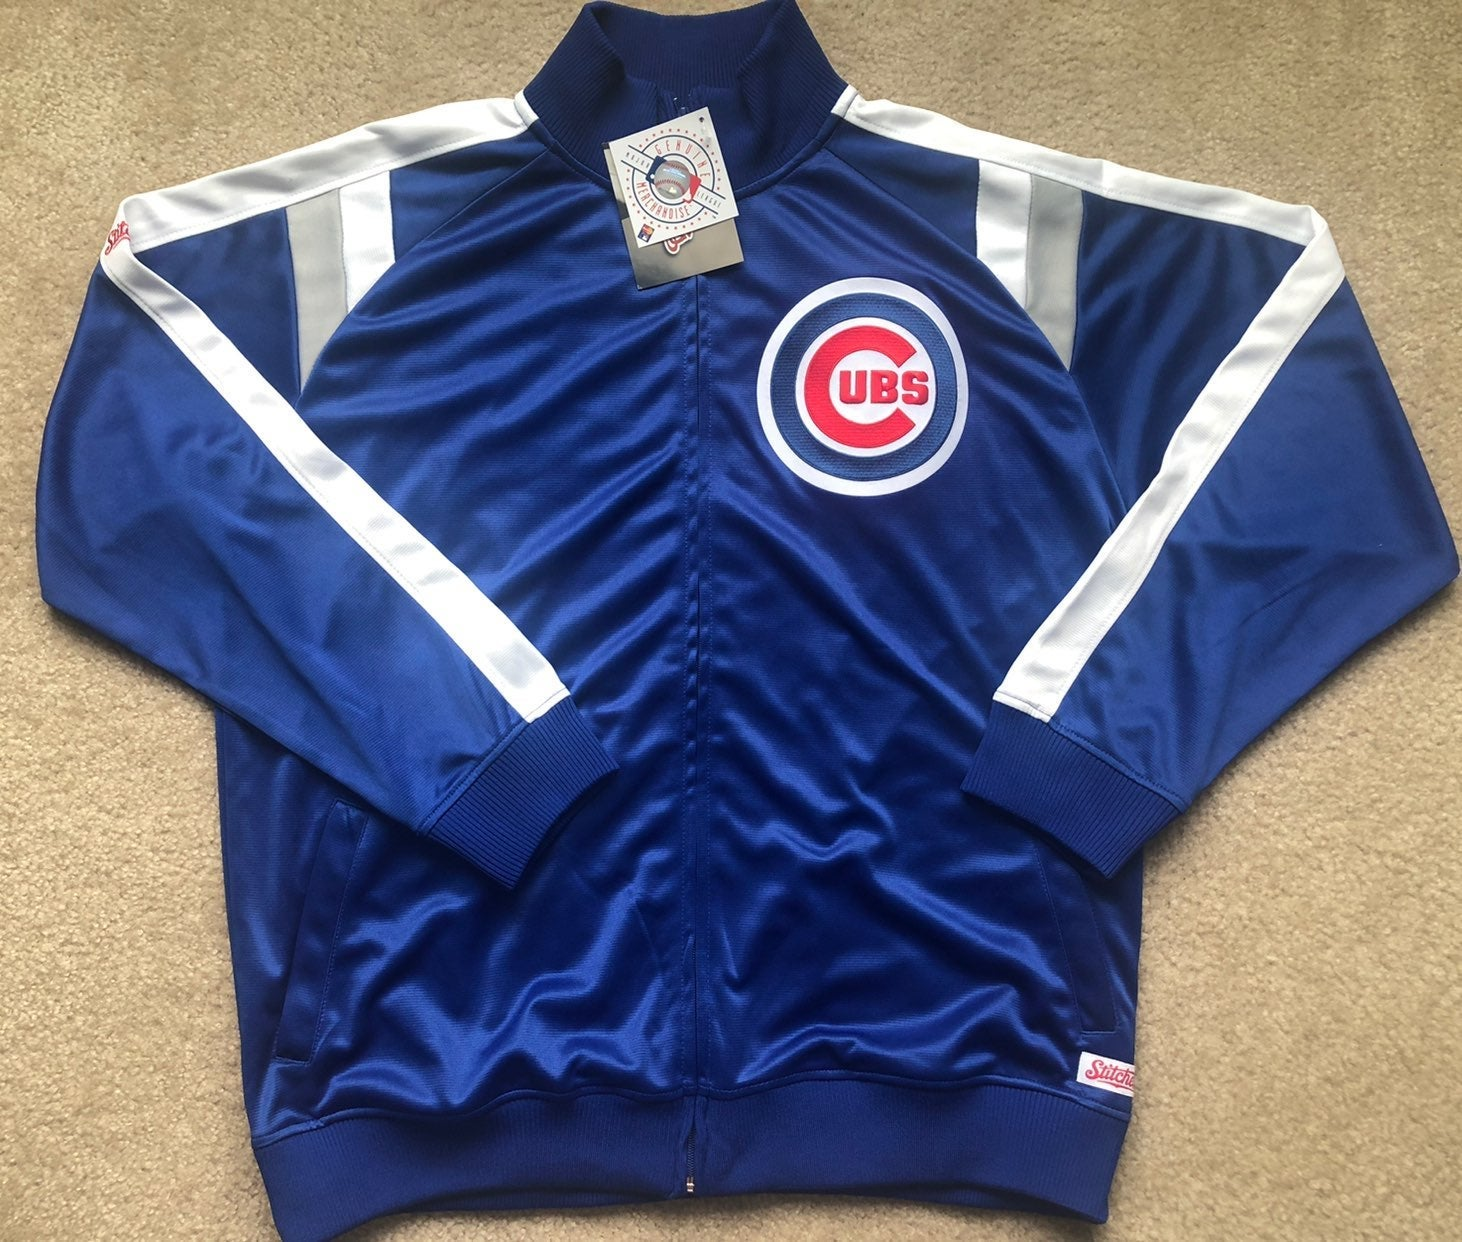 New Chicago Cubs warmup jacket